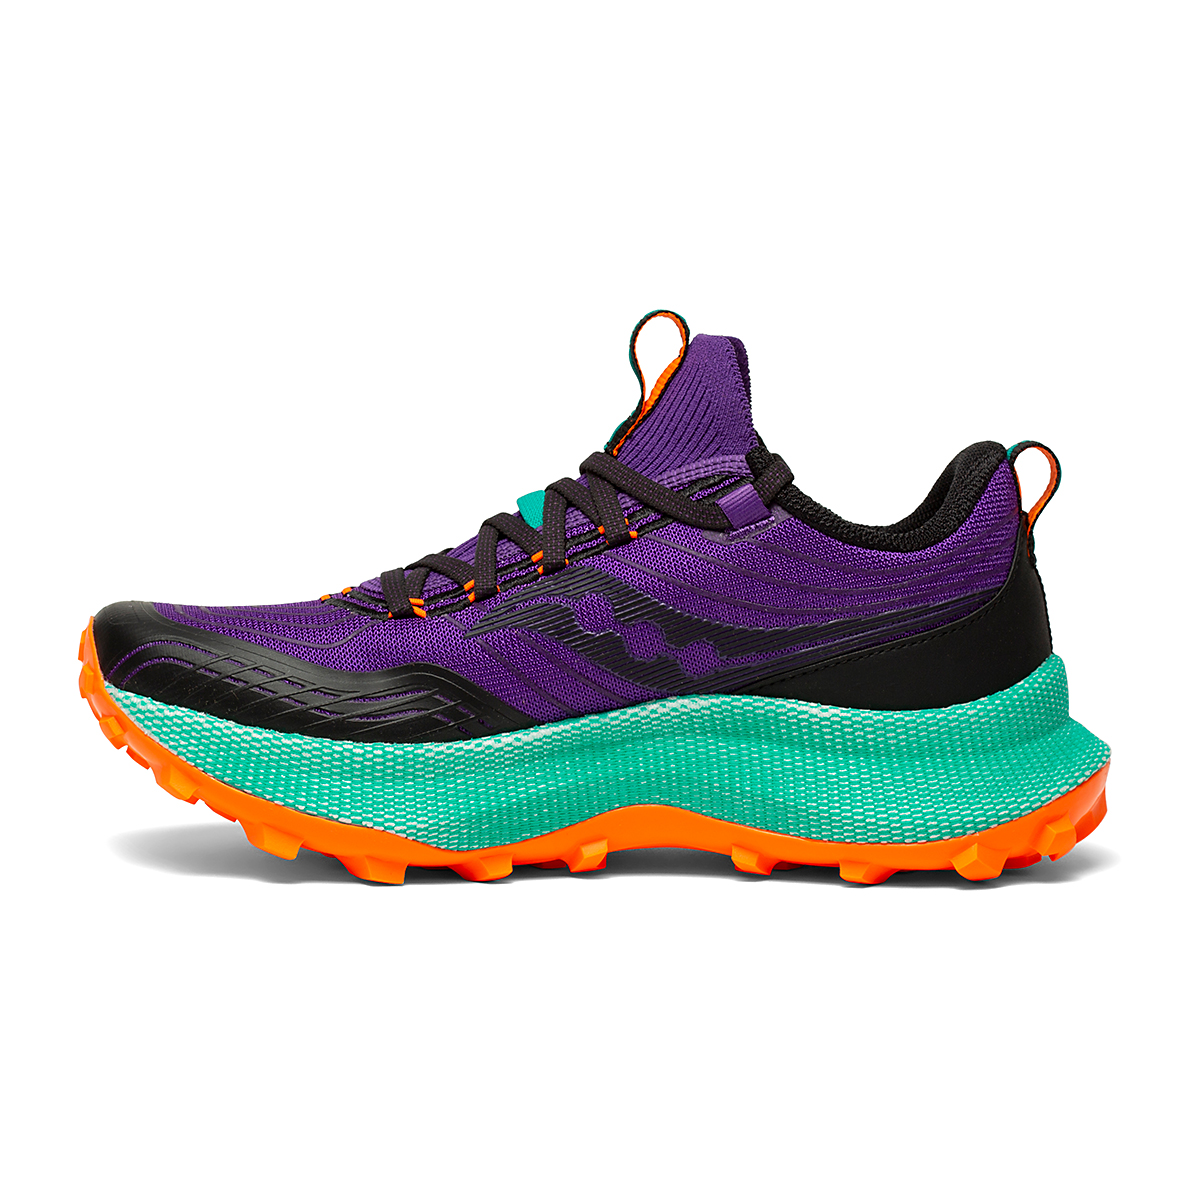 Women's Saucony Endorphin Trail Running Shoe - Color: Concord / Jade - Size: 5 - Width: Regular, Concord / Jade, large, image 2